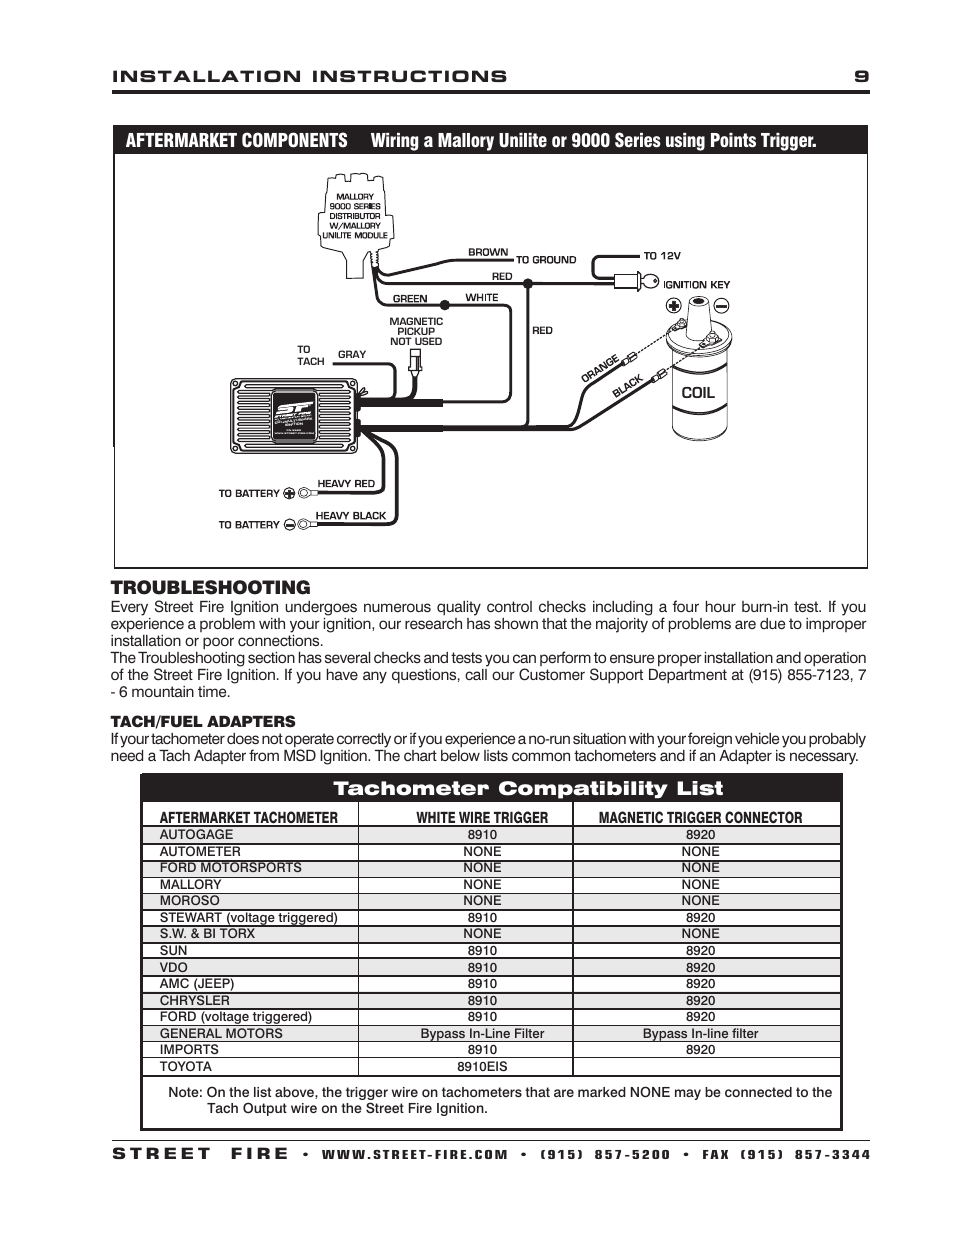 Troubleshooting tachometer compatibility list msd 5520 street troubleshooting tachometer compatibility list msd 5520 street fire ignition control installation user manual page 9 12 sciox Image collections